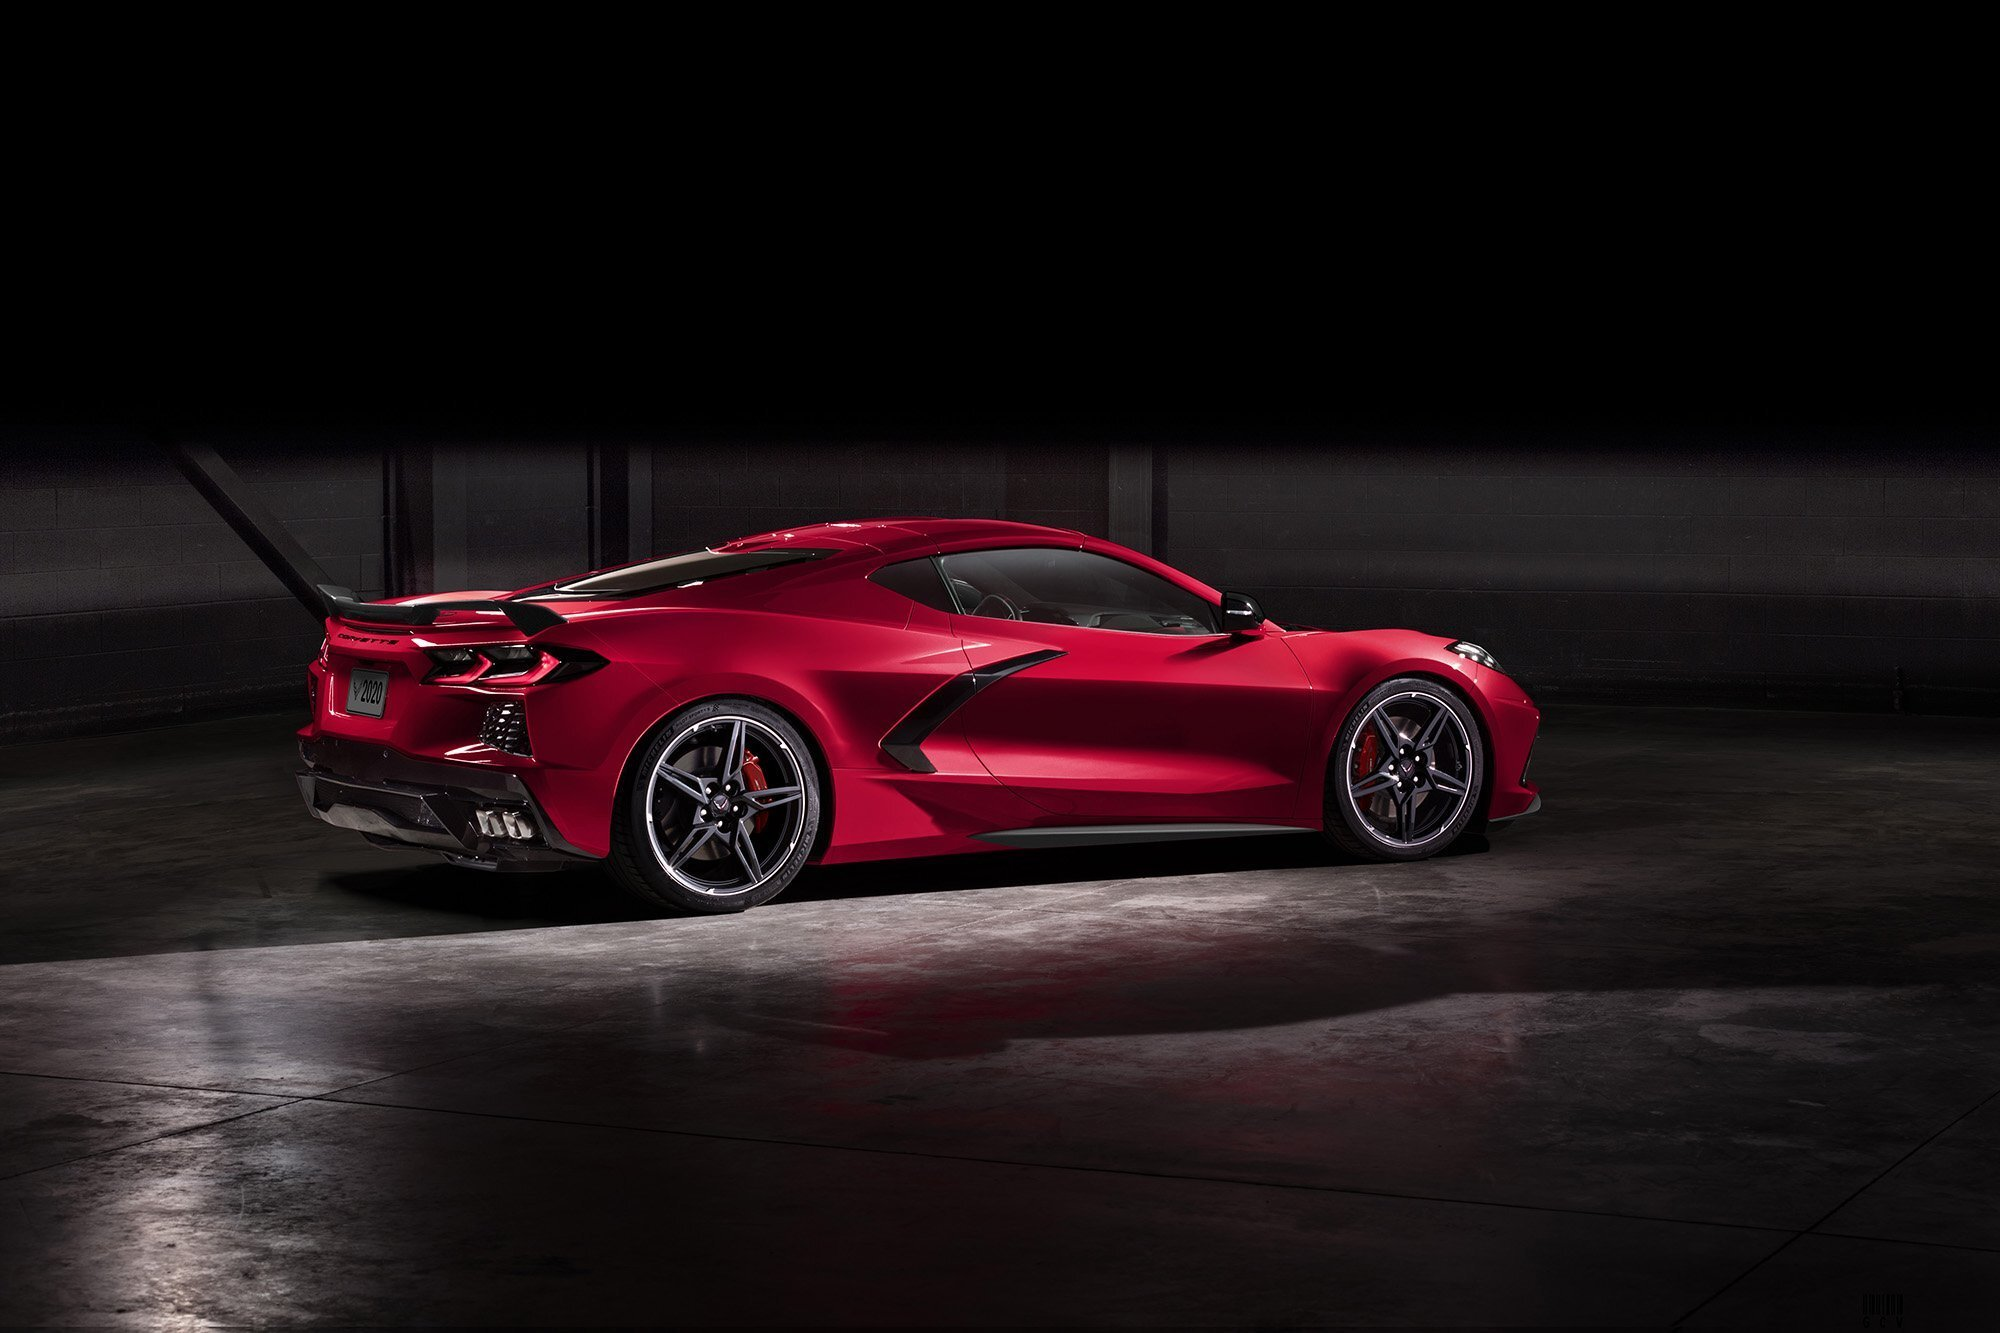 Photos: Chevy's new redesigned Corvette